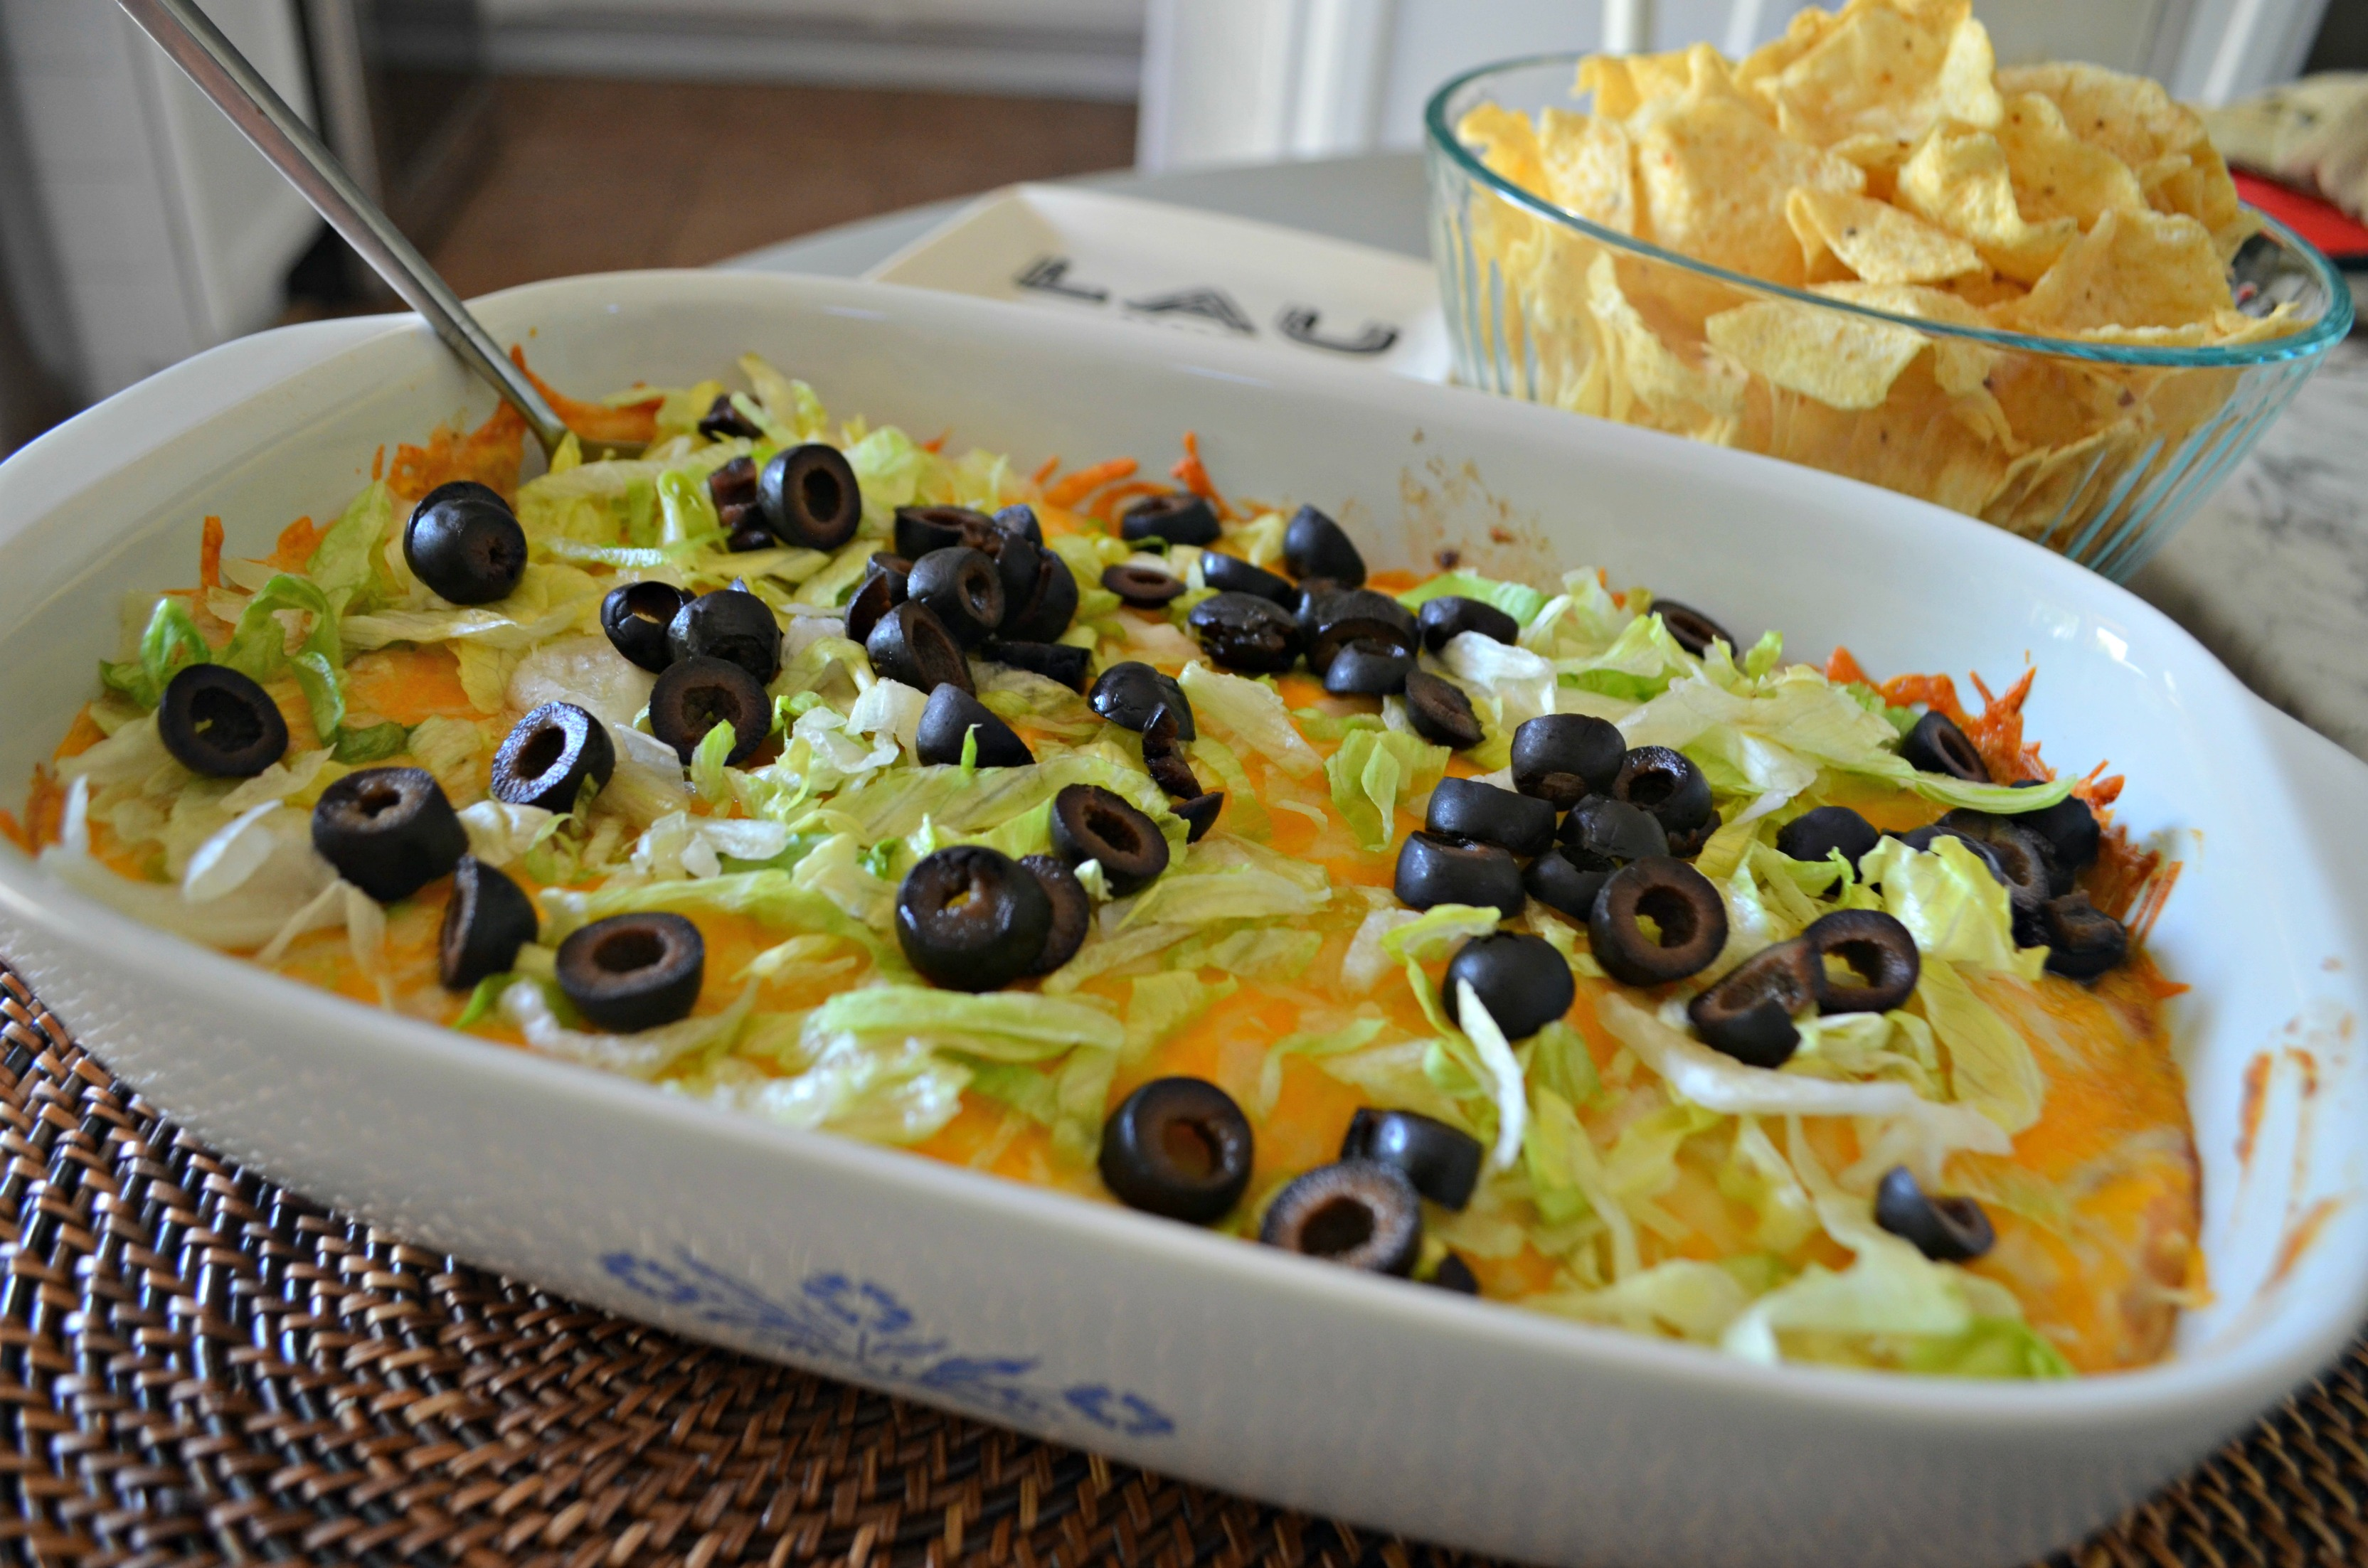 Baked taco dip with shredded lettuce and black olives on top.